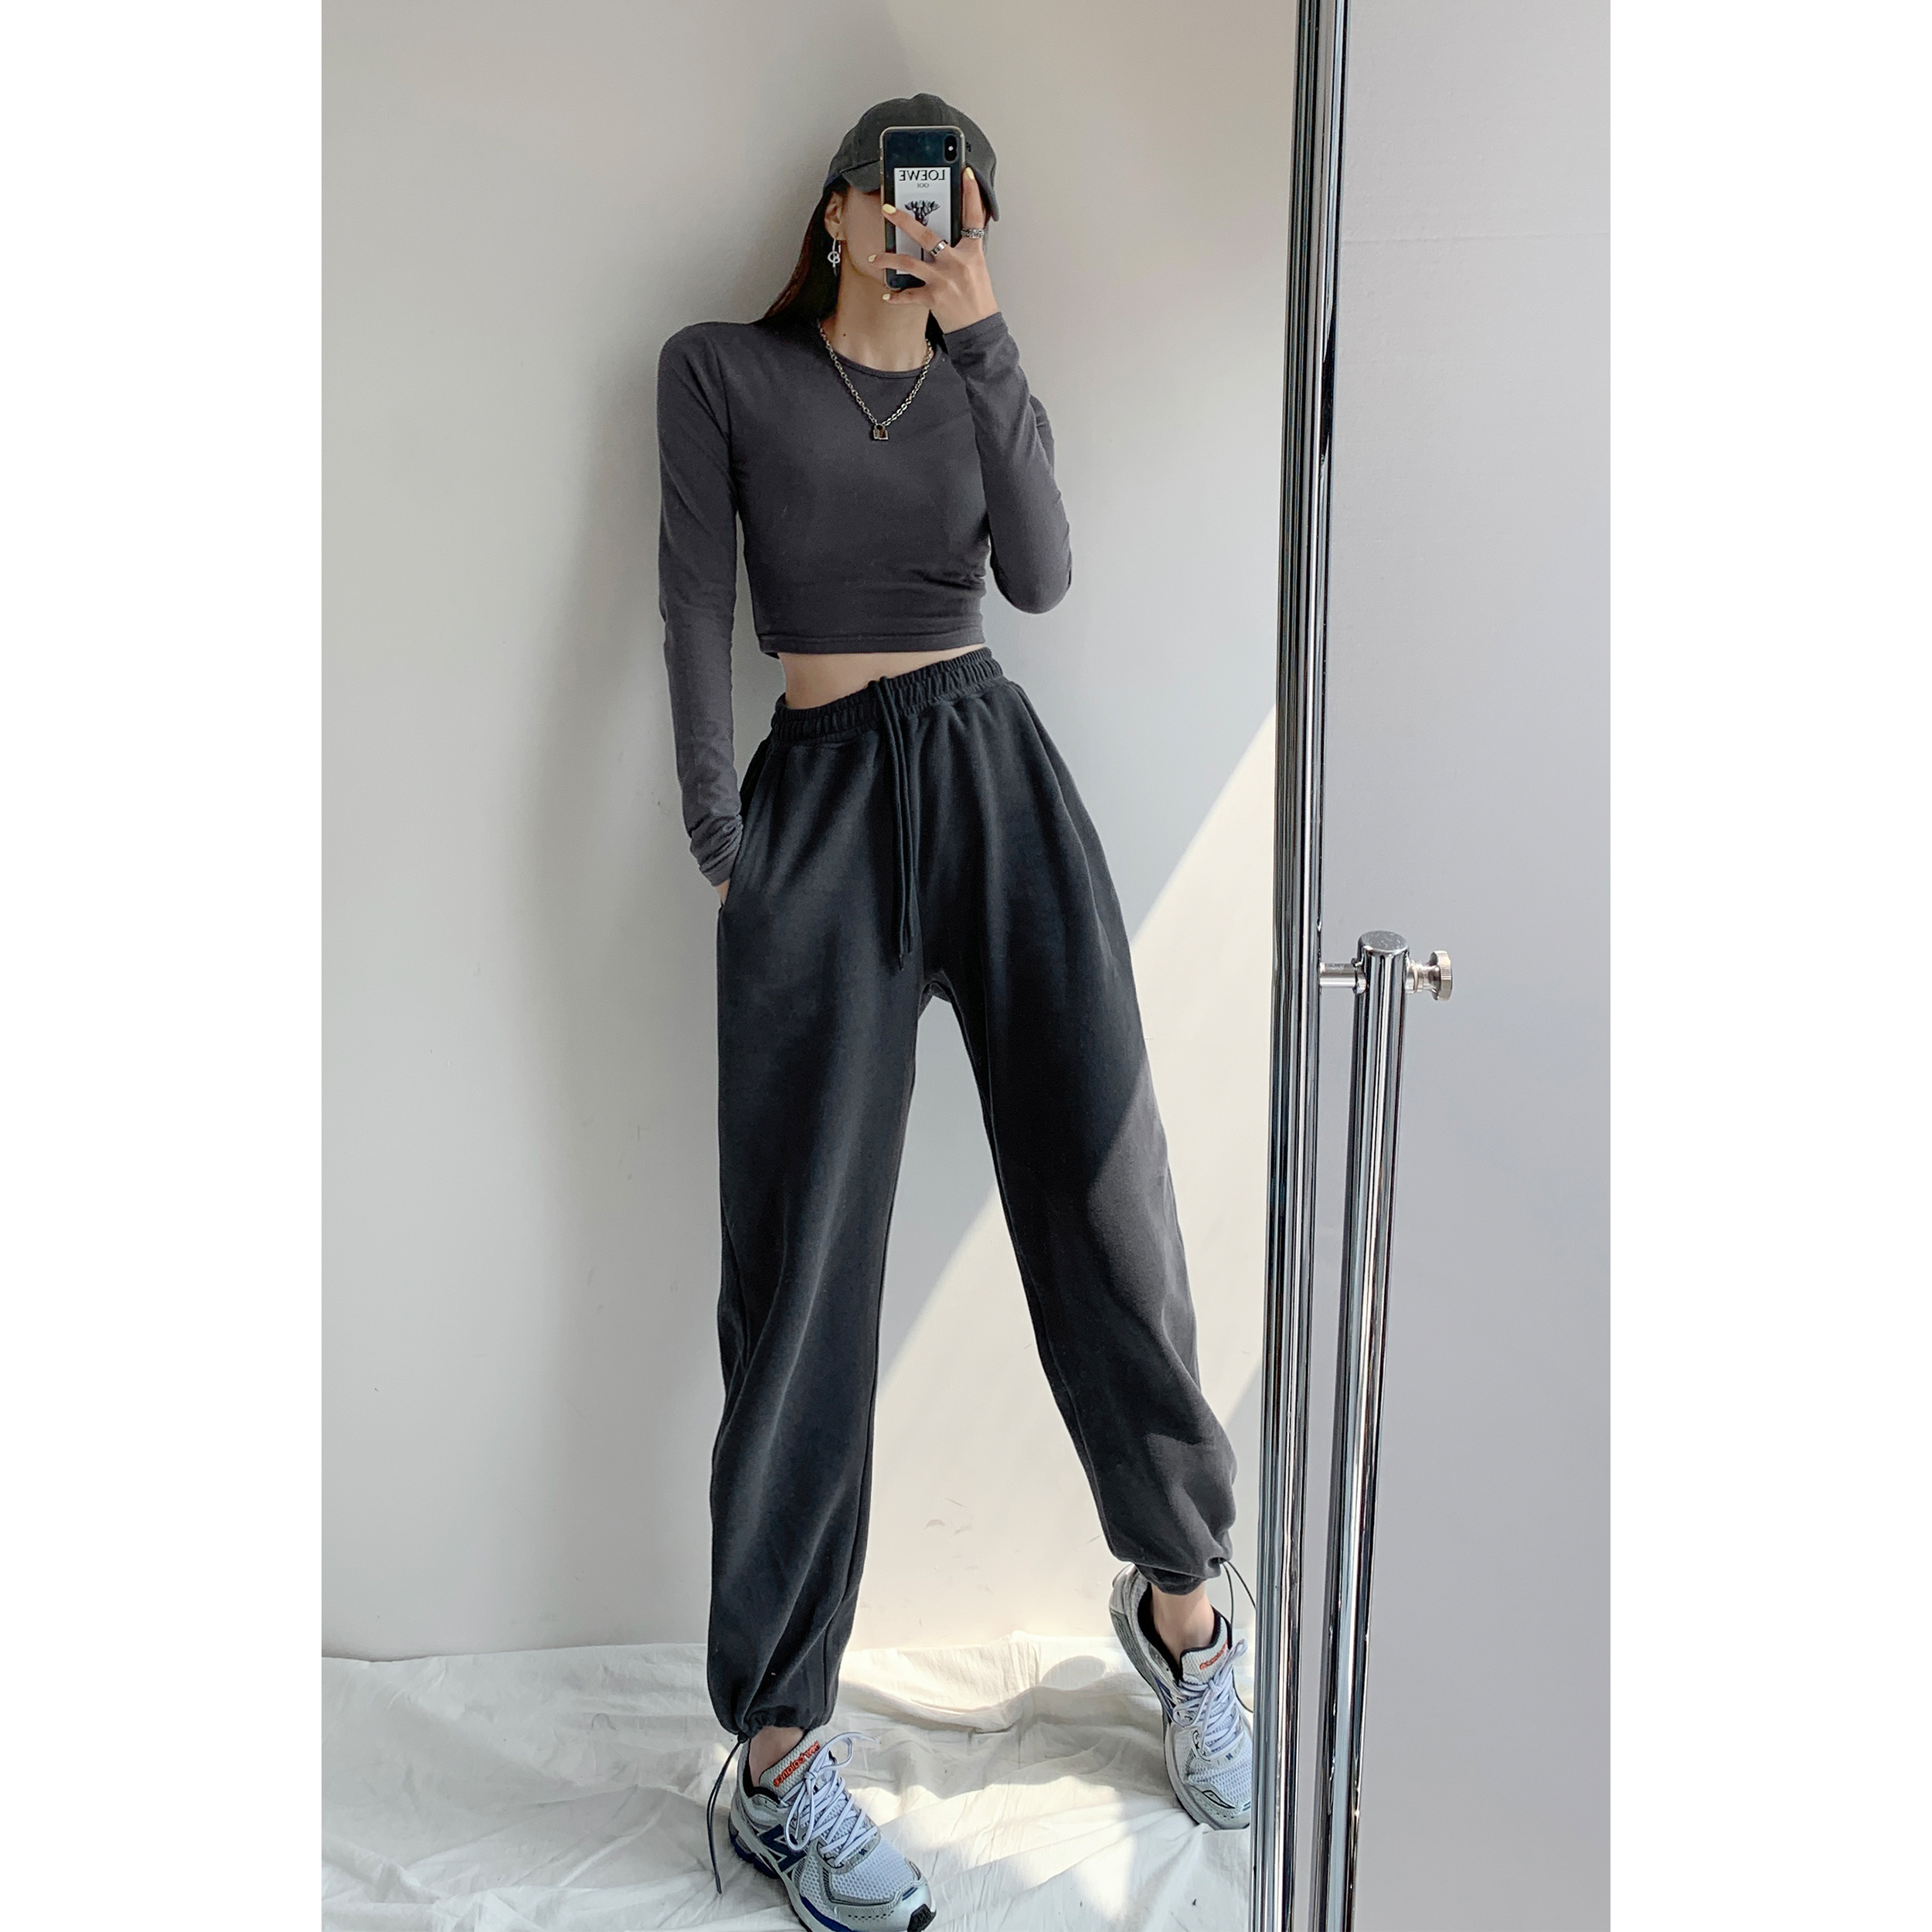 Fried Street American Loose Sports Pants Women's Casual Leggings Pants Autumn and Winter Plus Velvet Gray High Waist Straight Sweatpants